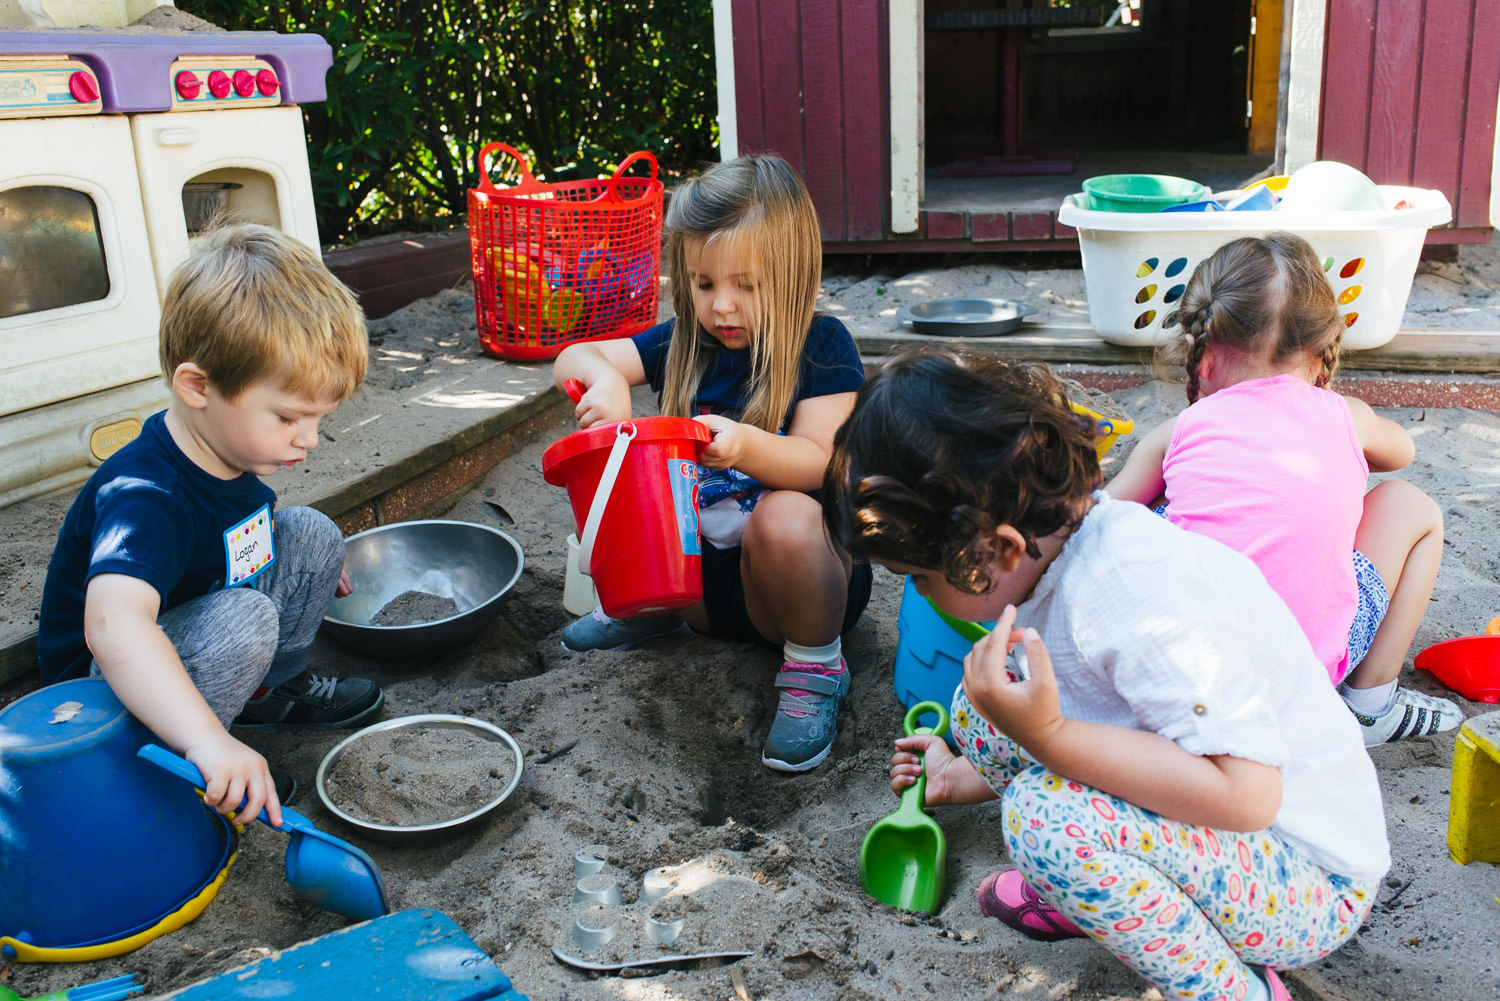 Preschoolers play in the sandbox at school.